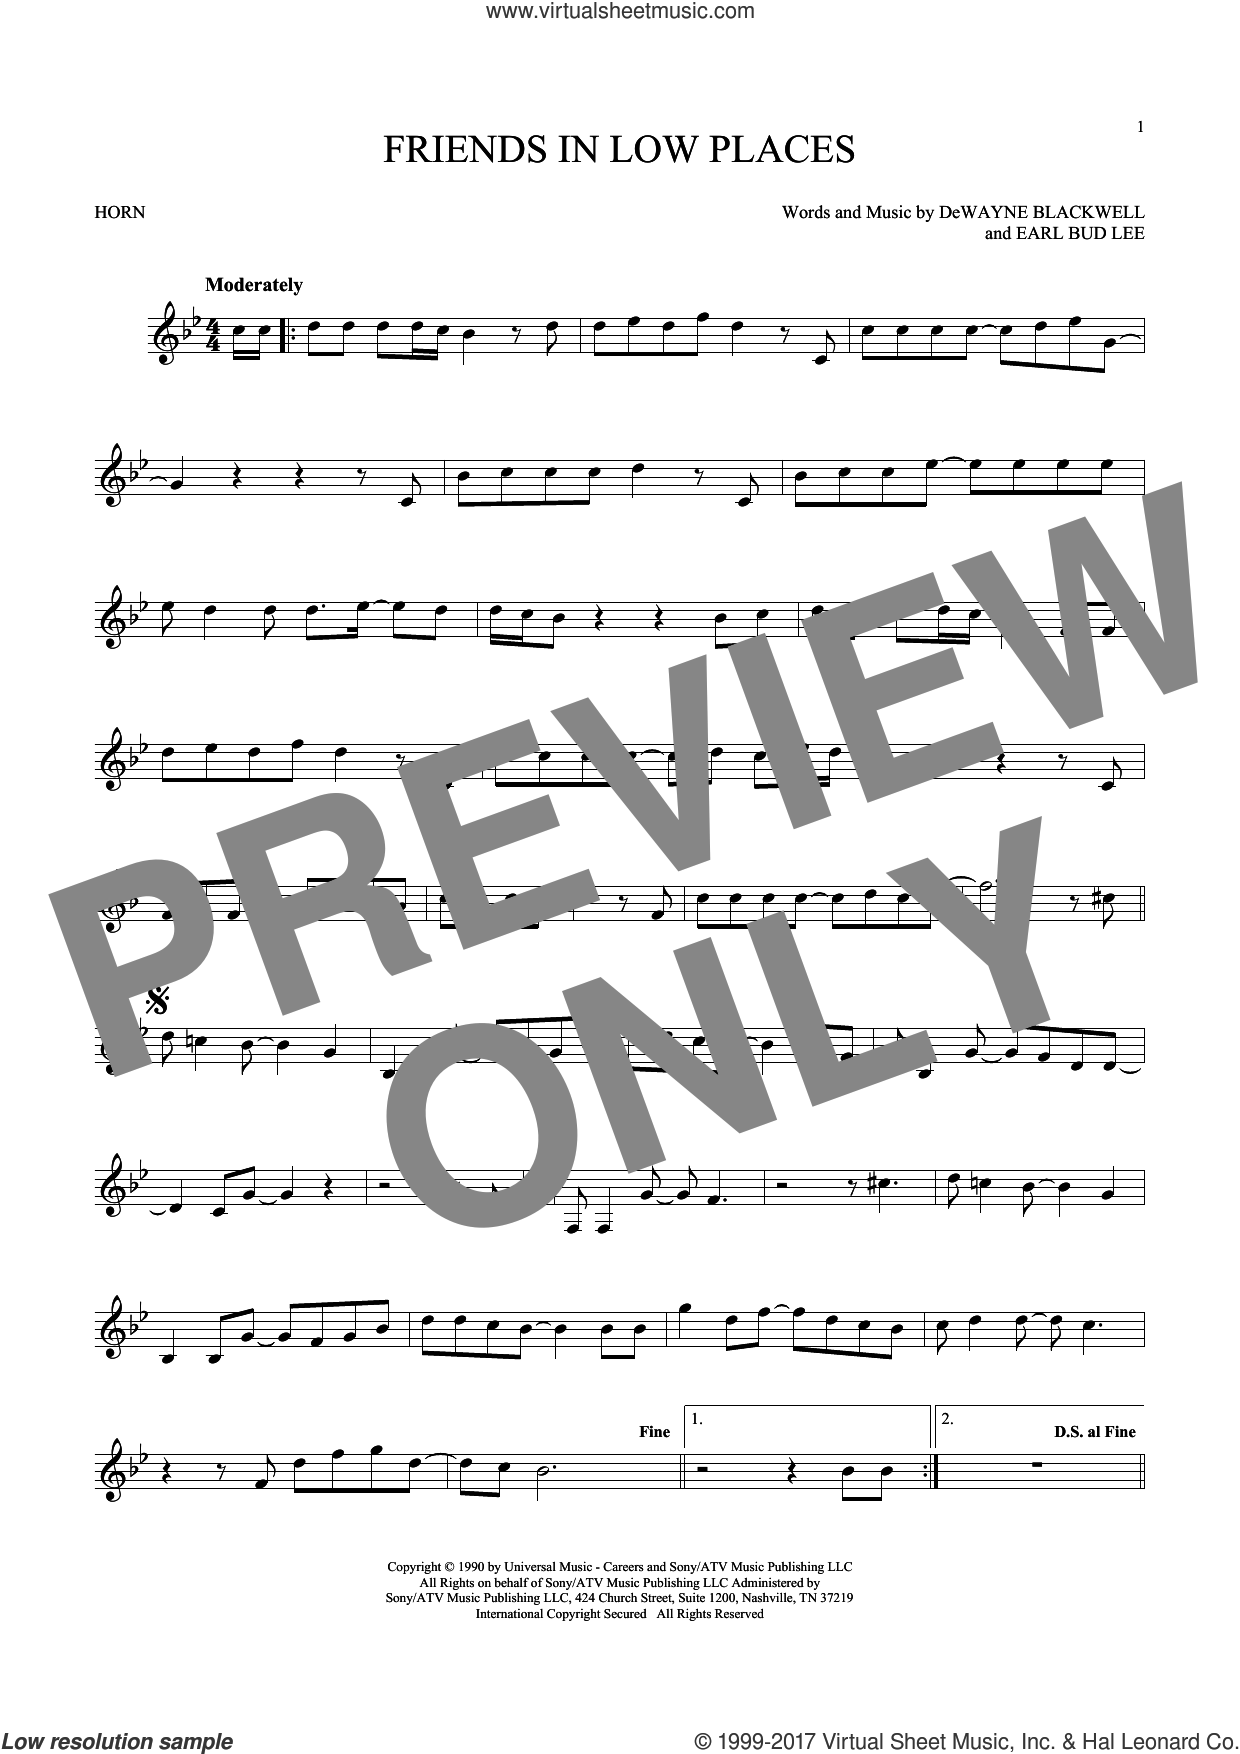 Friends In Low Places sheet music for horn solo by Garth Brooks, DeWayne Blackwell and Earl Bud Lee, intermediate skill level